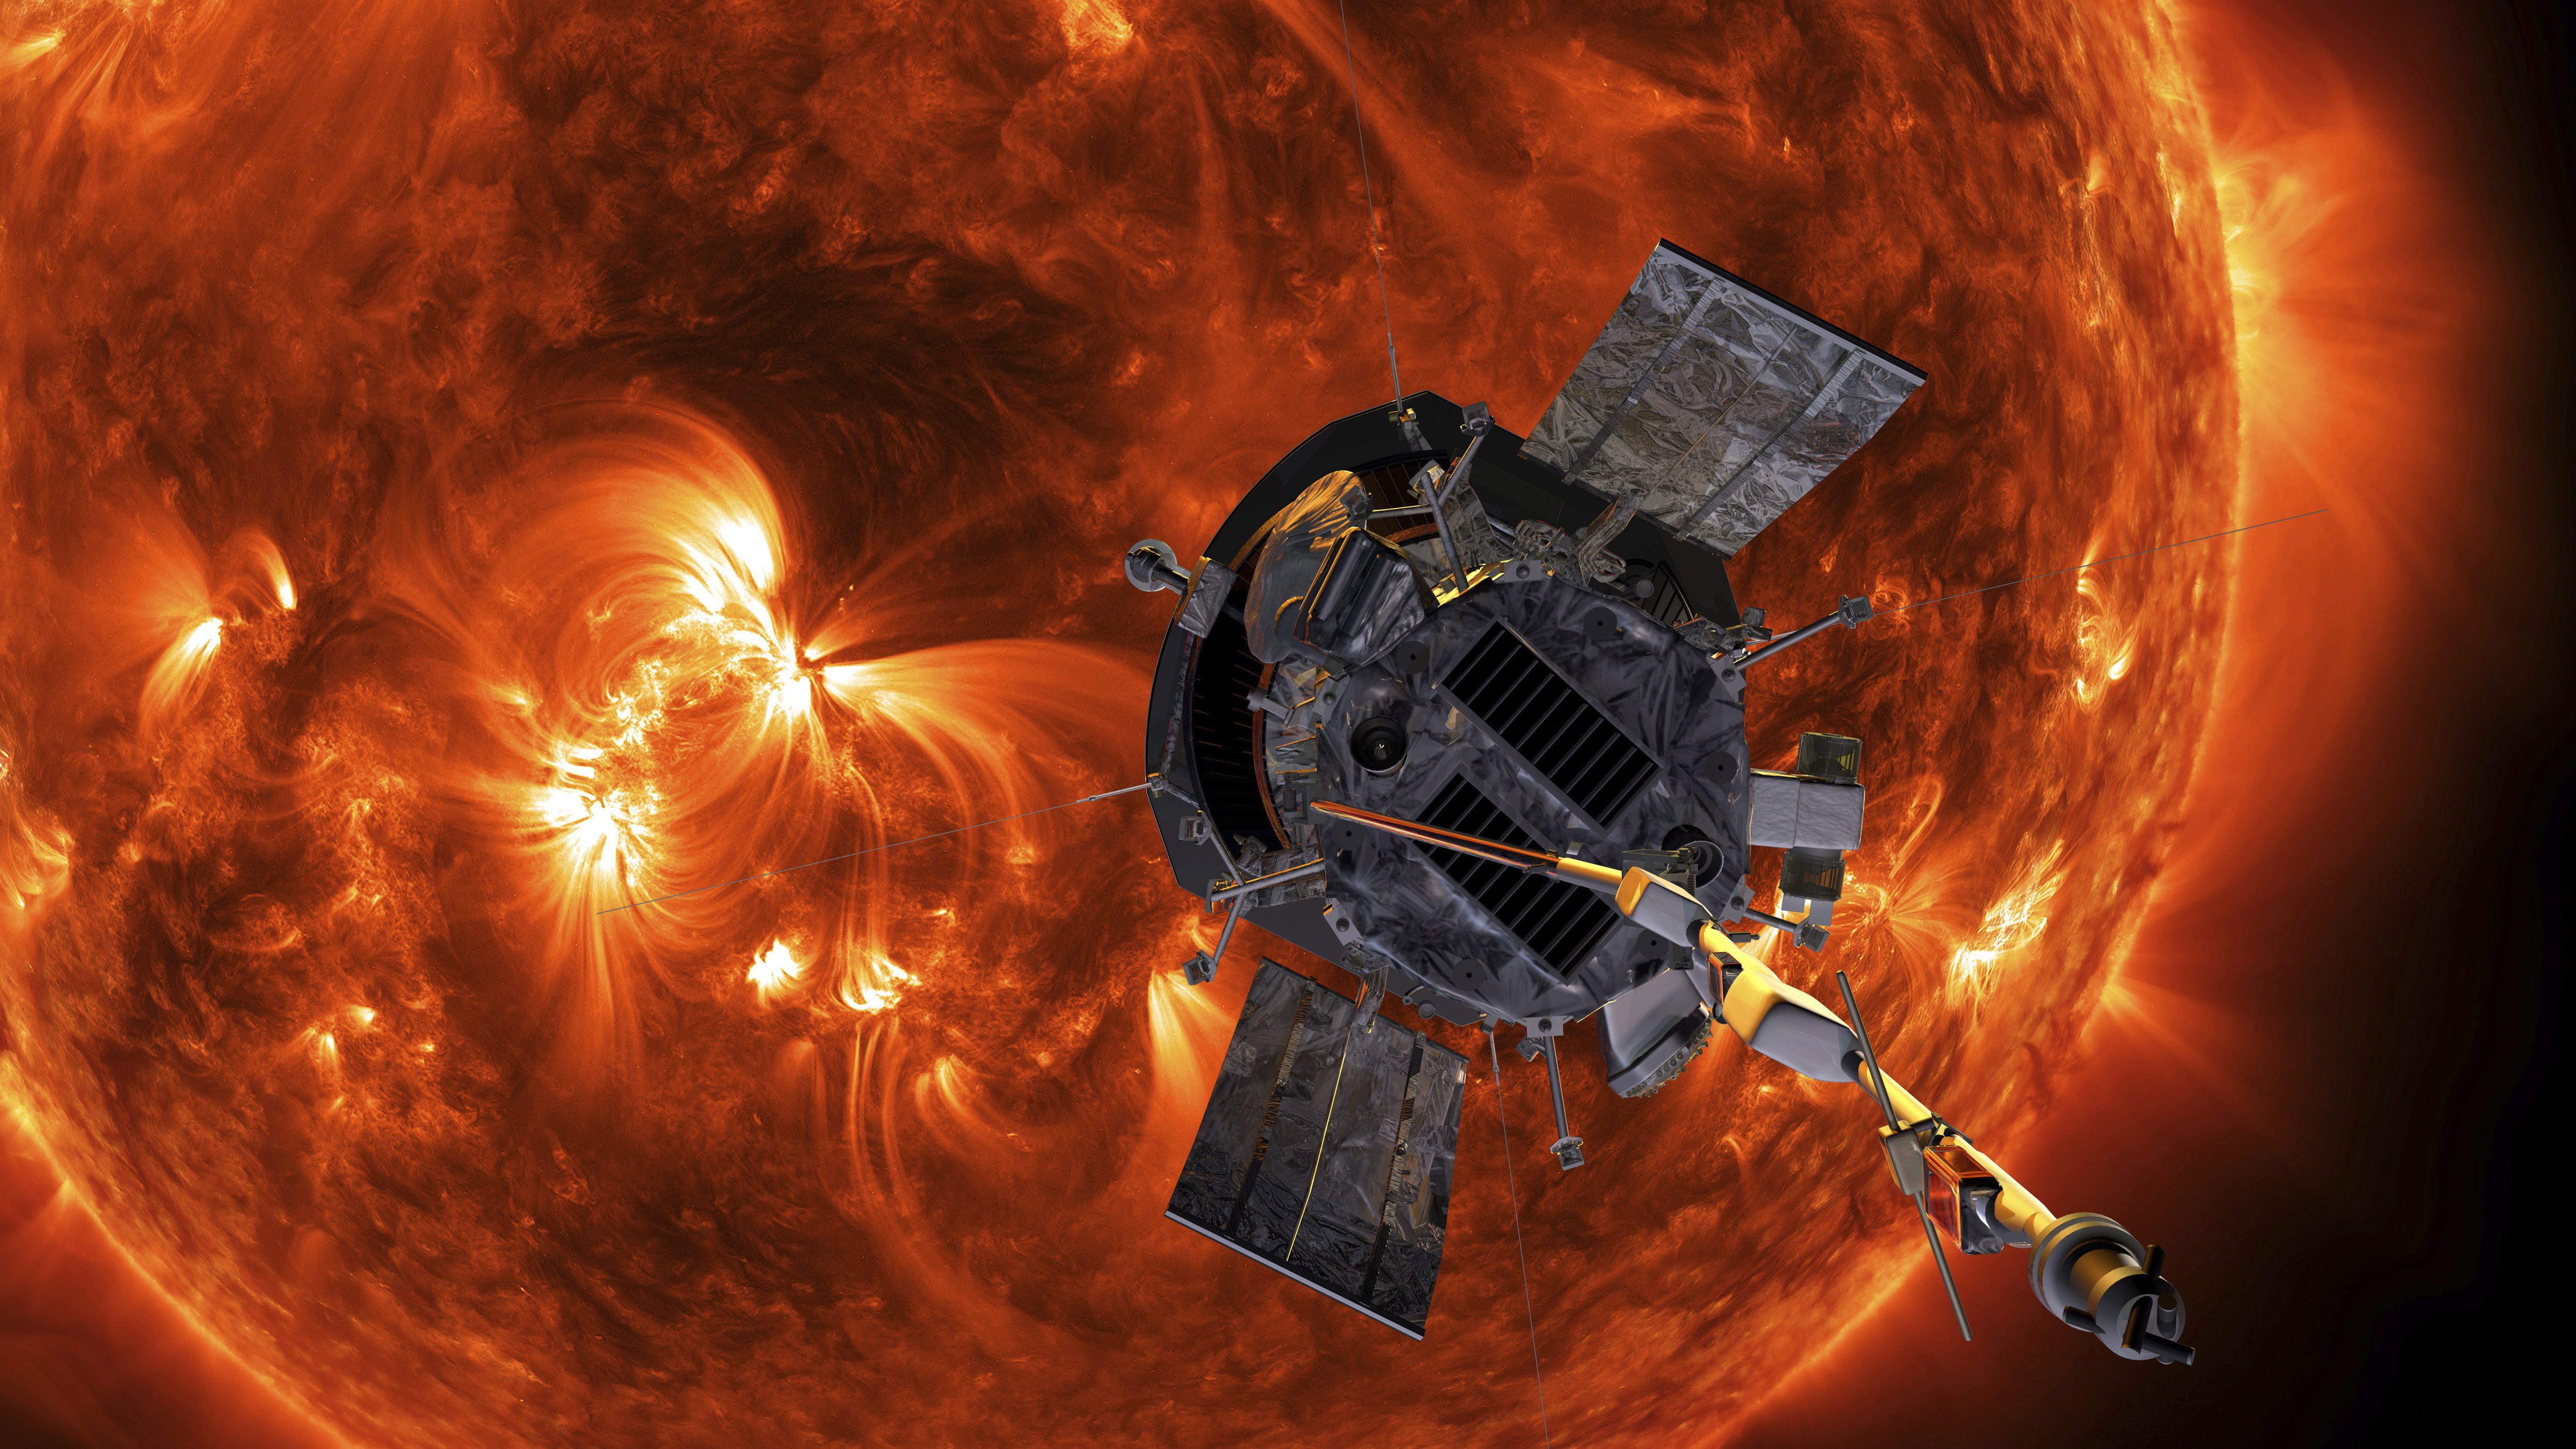 NASA blasts off historic probe to 'touch the sun'